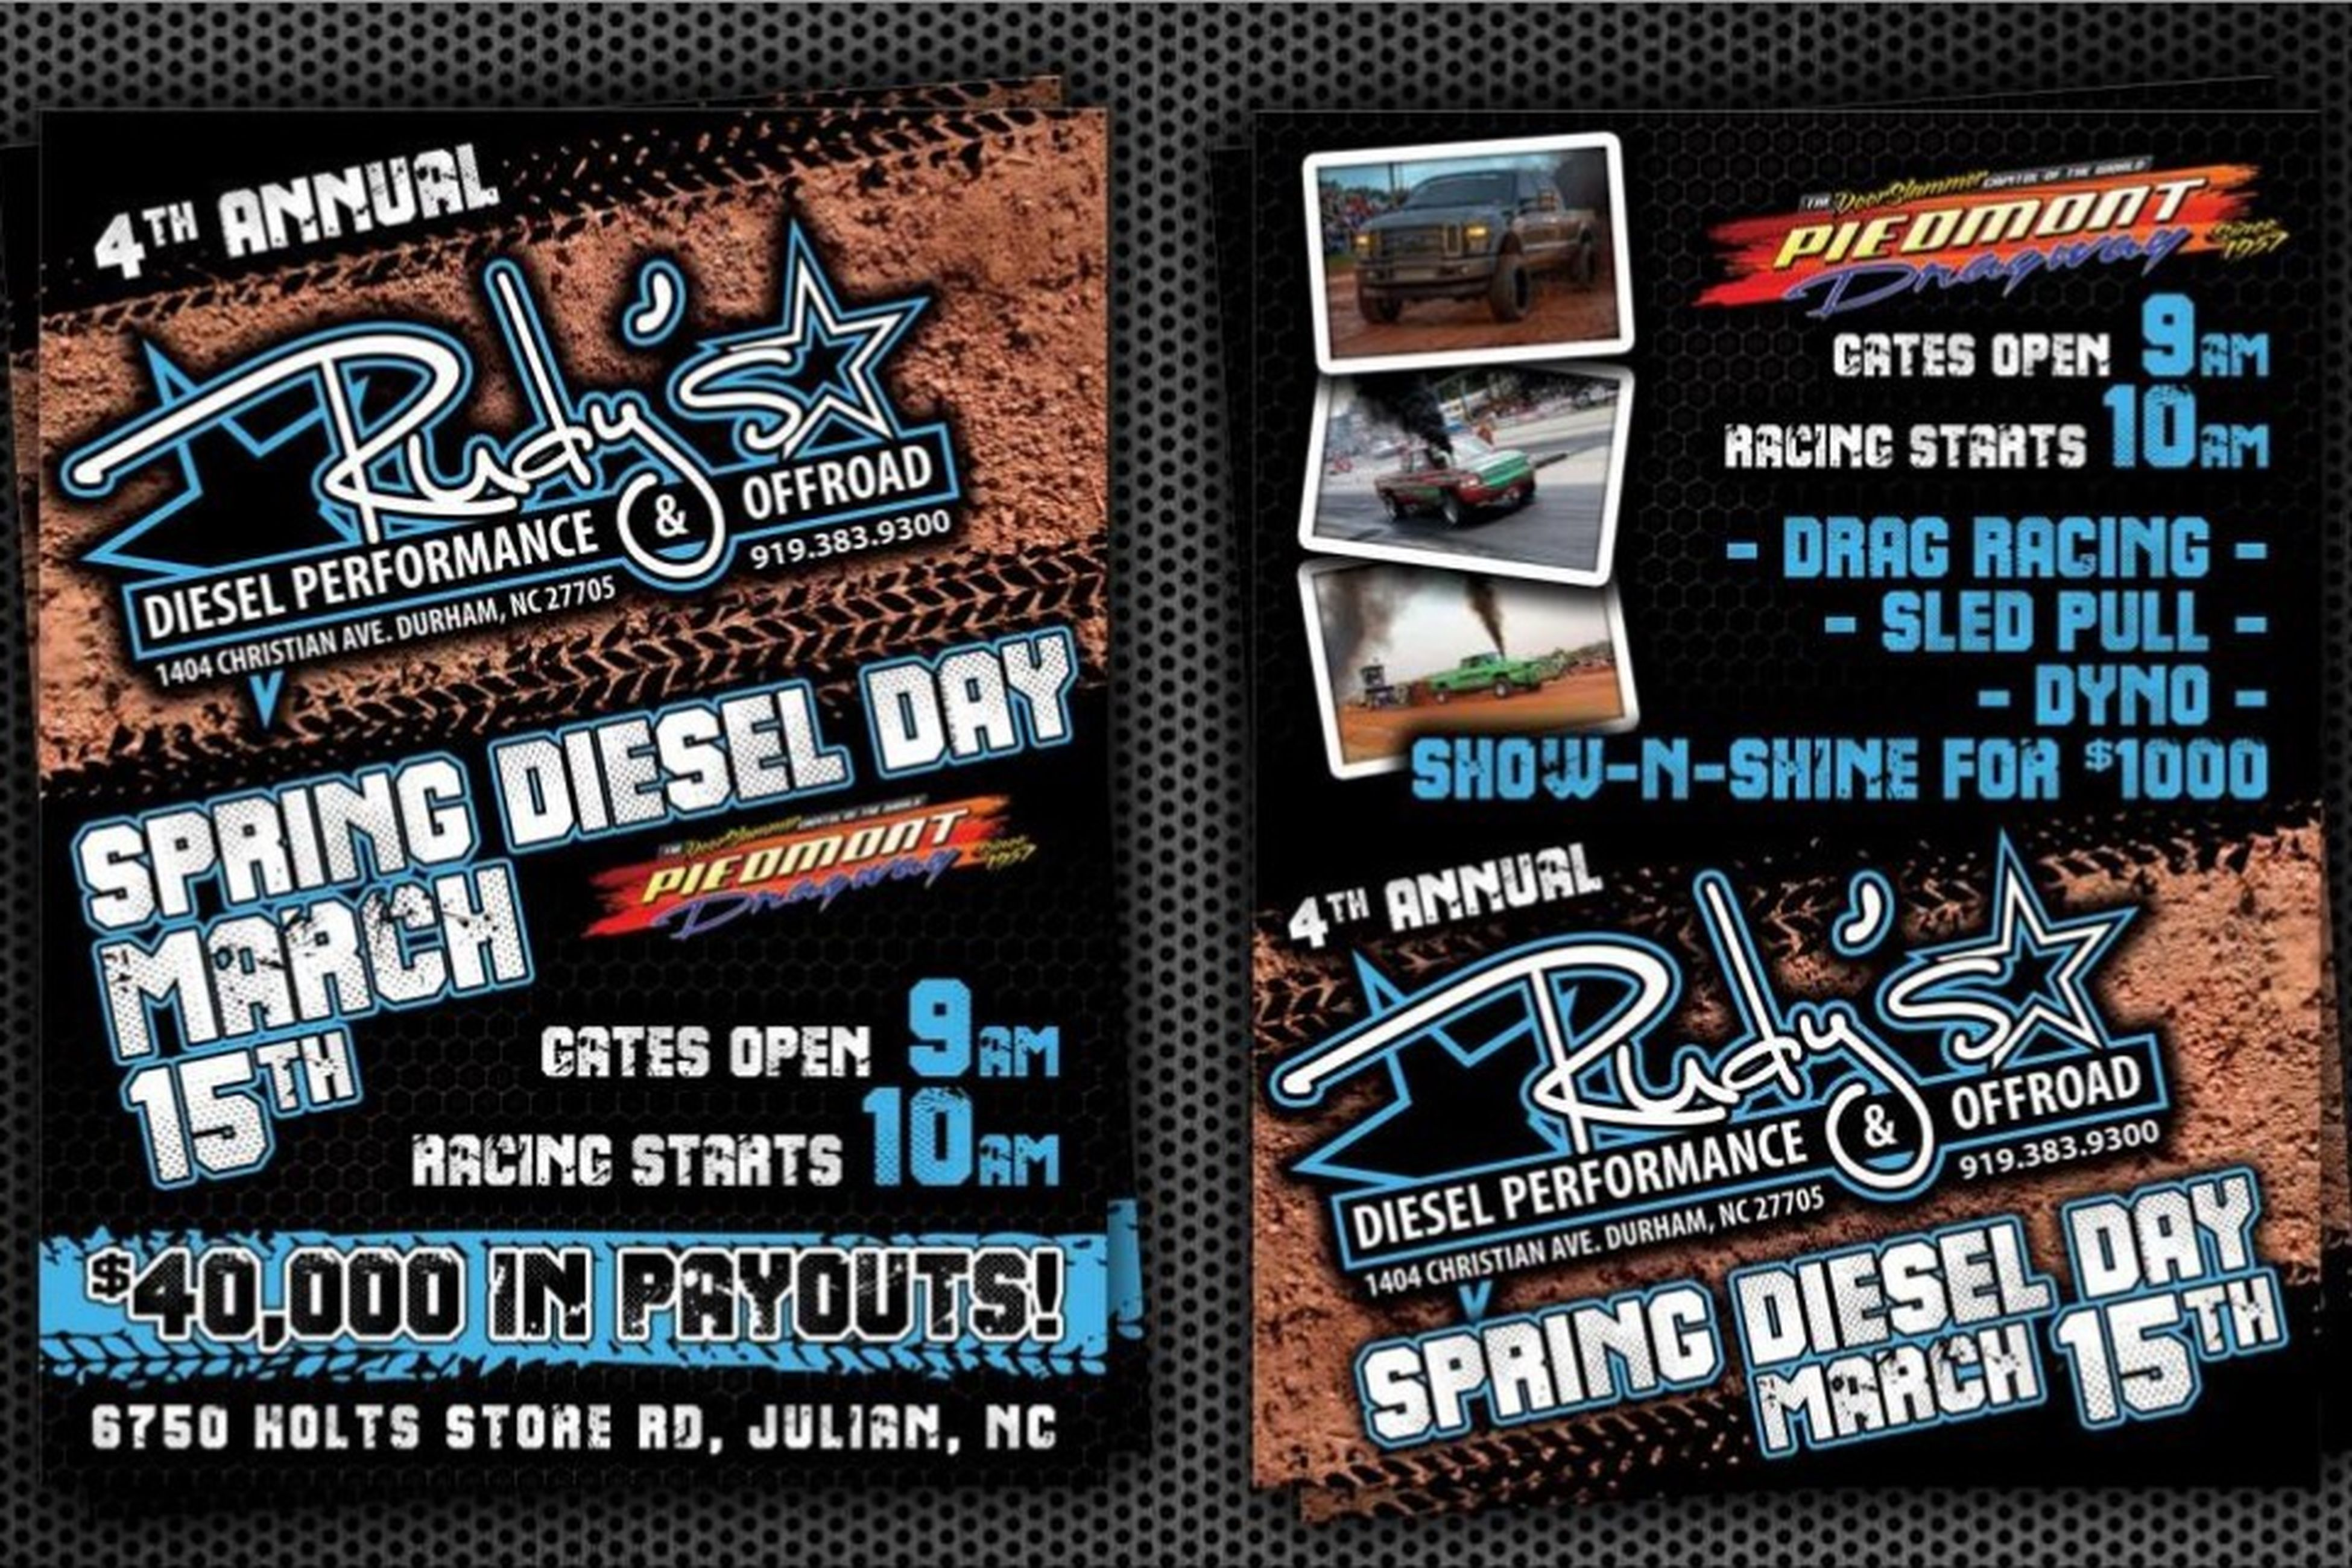 I'm so ready for this Dieselday Rollcoal Hurryup